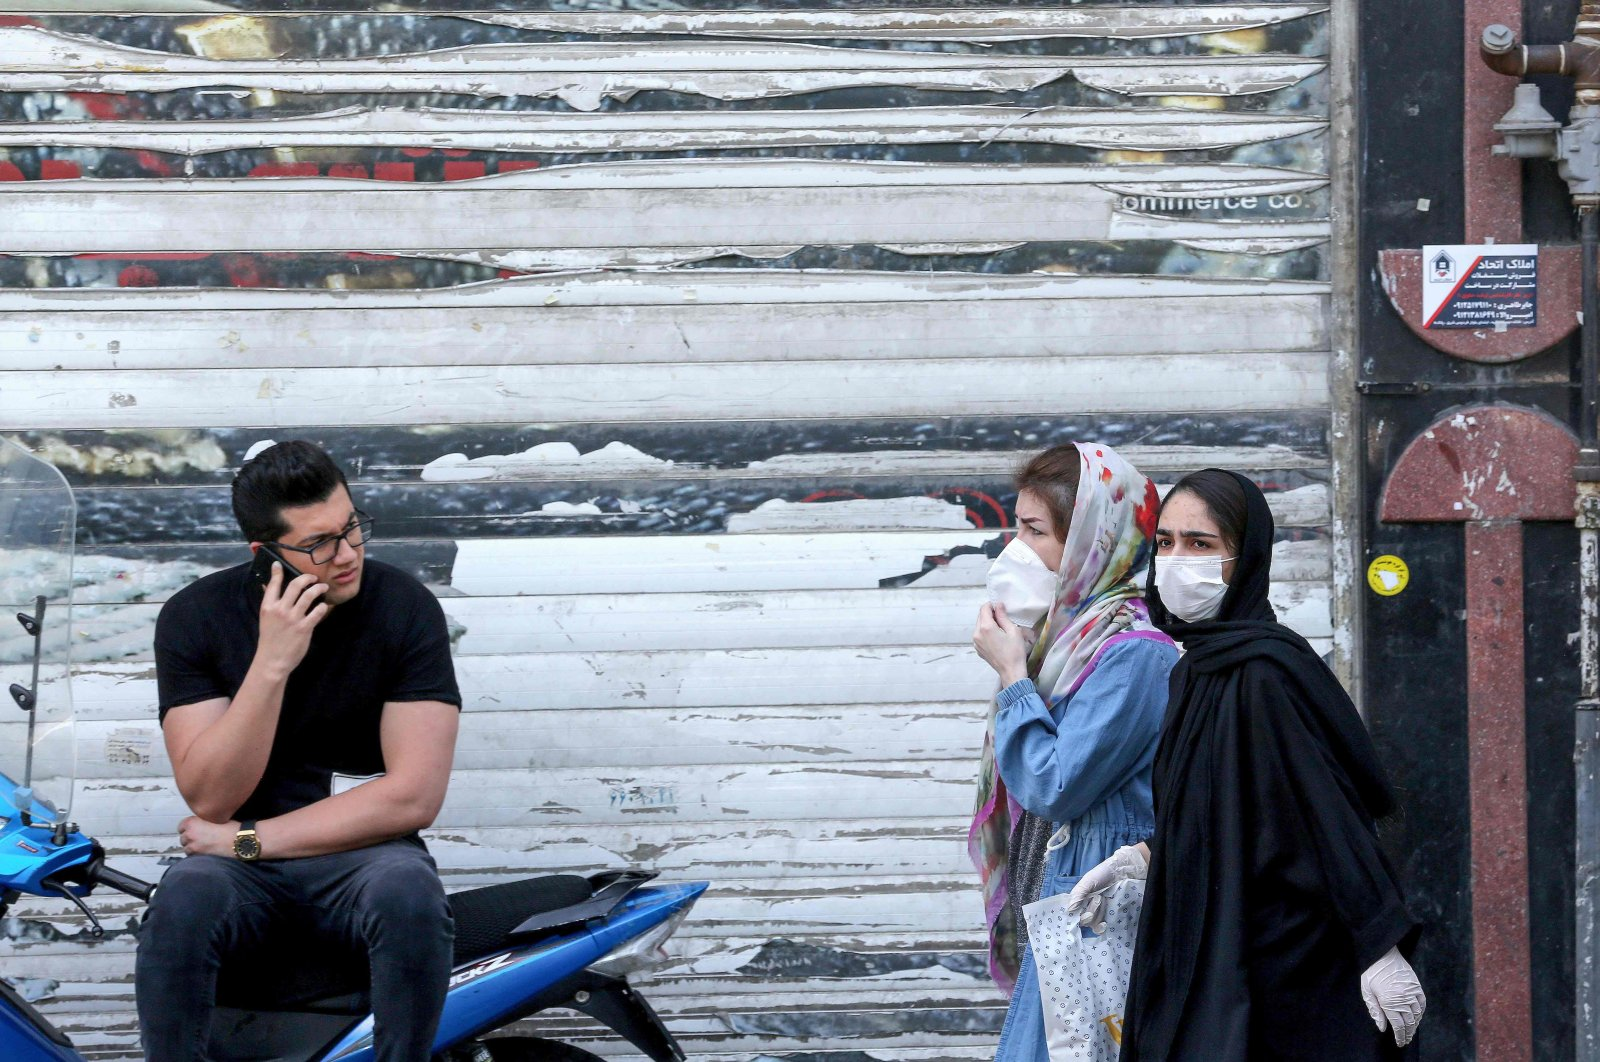 An Iranian youth talks on the phone as he watches women wearing protective masks walk by on a street of the capital Tehran, May 9, 2020. (AFP)